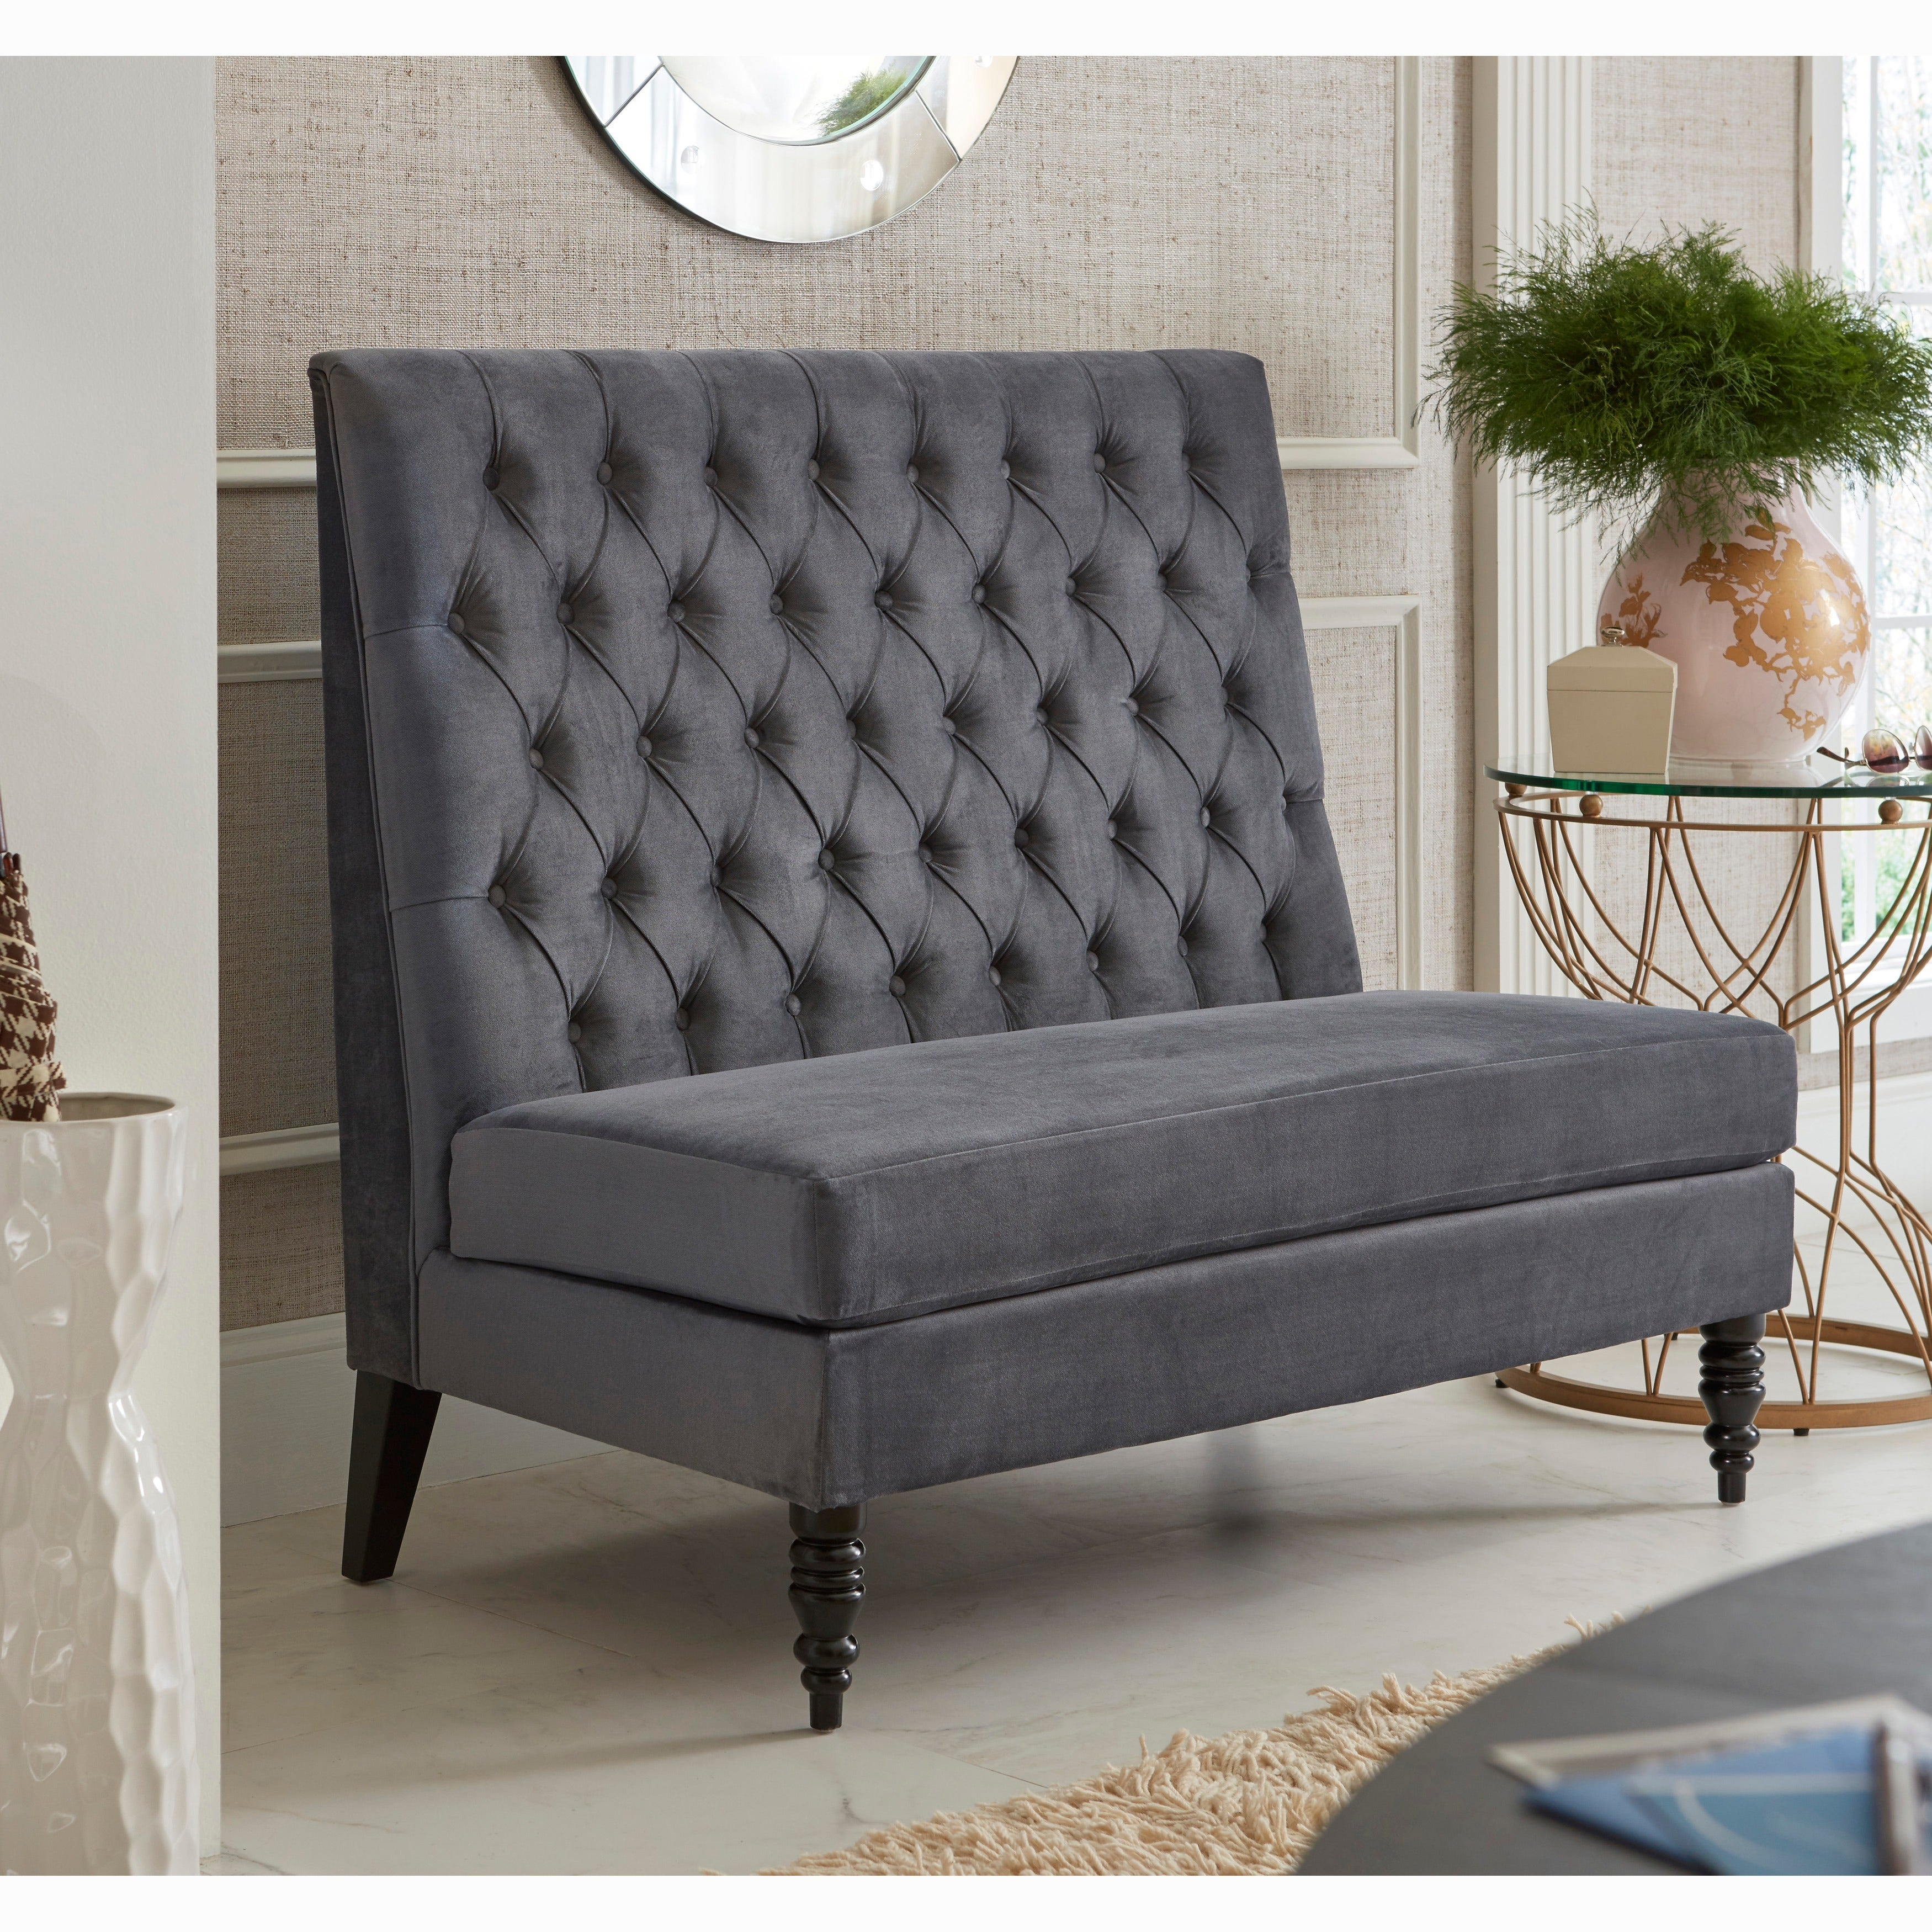 banquette shipping grey today velvet overstock home silver tufted garden bench product free curved upholstered